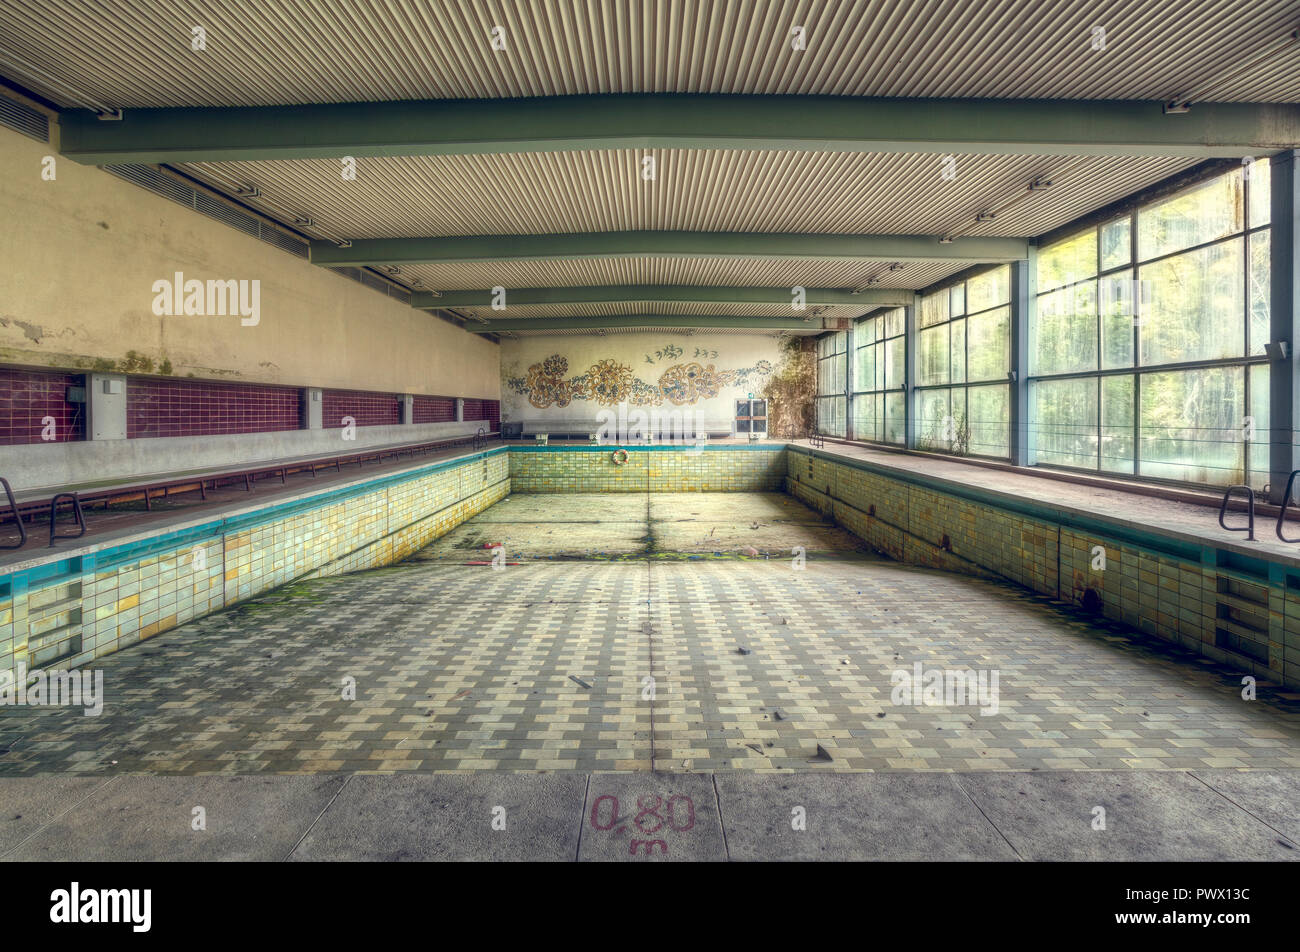 Interior View Of An Empty Swimming Pool In An Abandoned Hotel In Germany Stock Photo Alamy